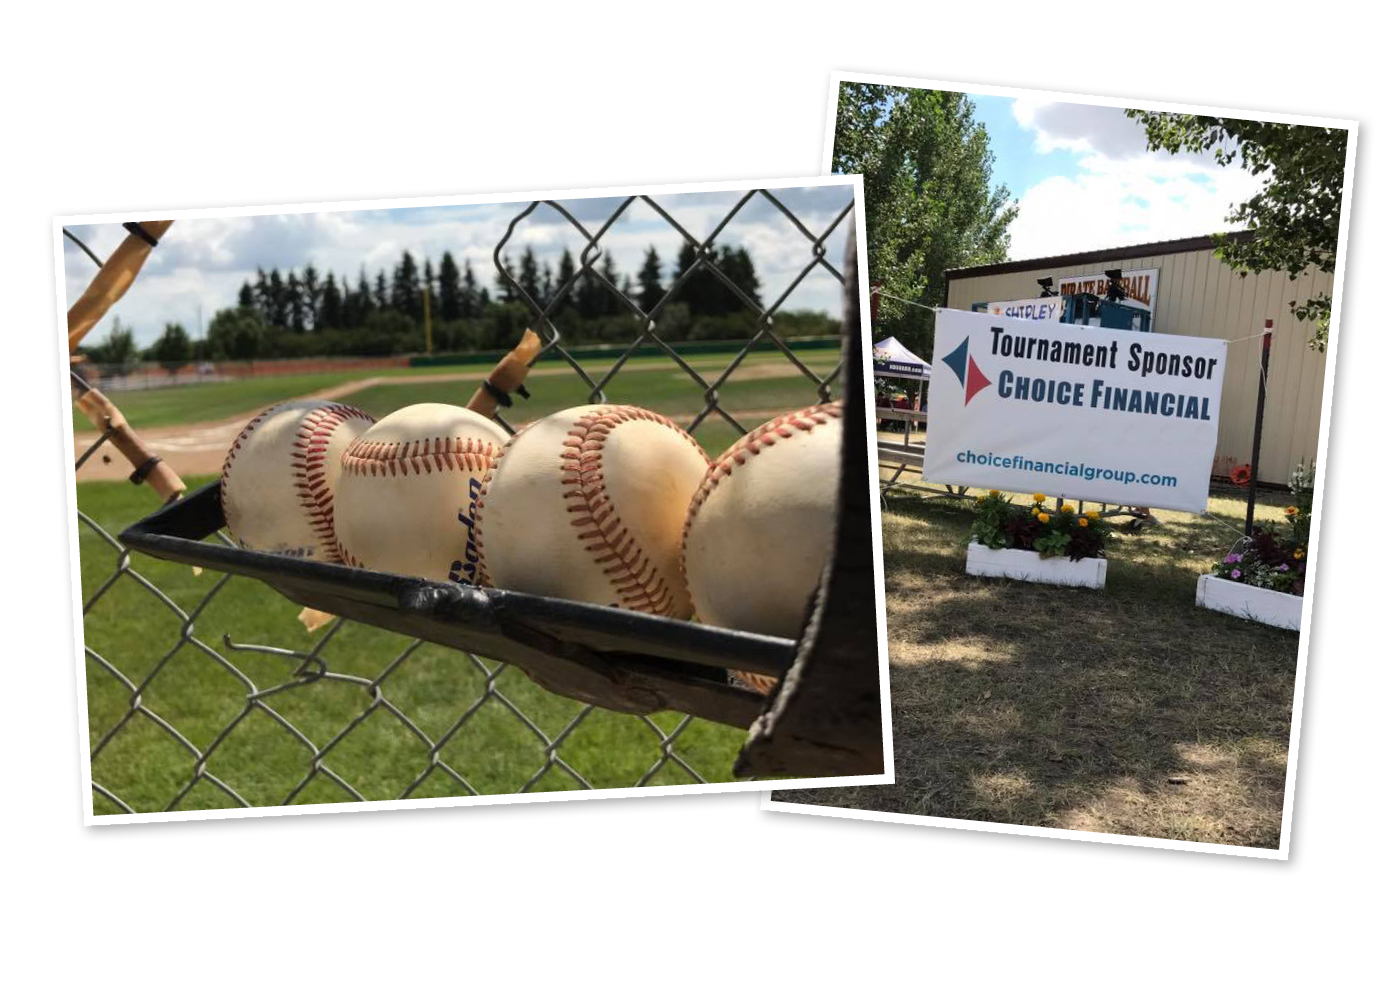 """Two pictures: (left) close-up of baseballs hanging from a fence, the baseball field in the background. (right) A sign saying """"Tournament Sponsor Choice Financial."""""""